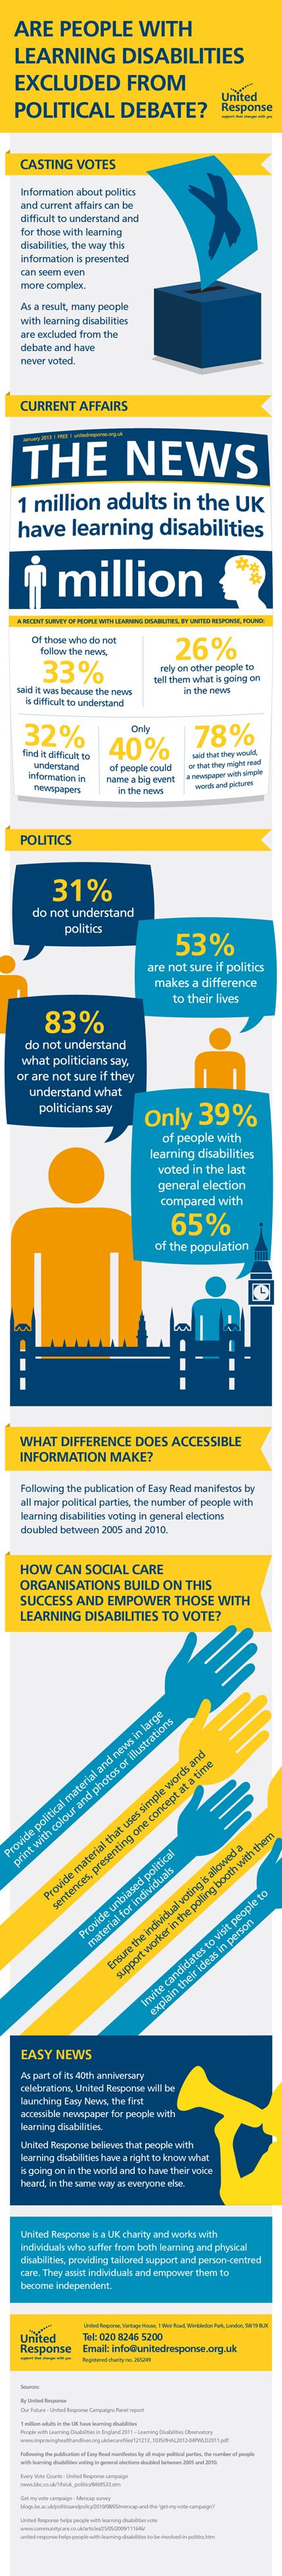 Are people with learning disabilities excluded from political debate?